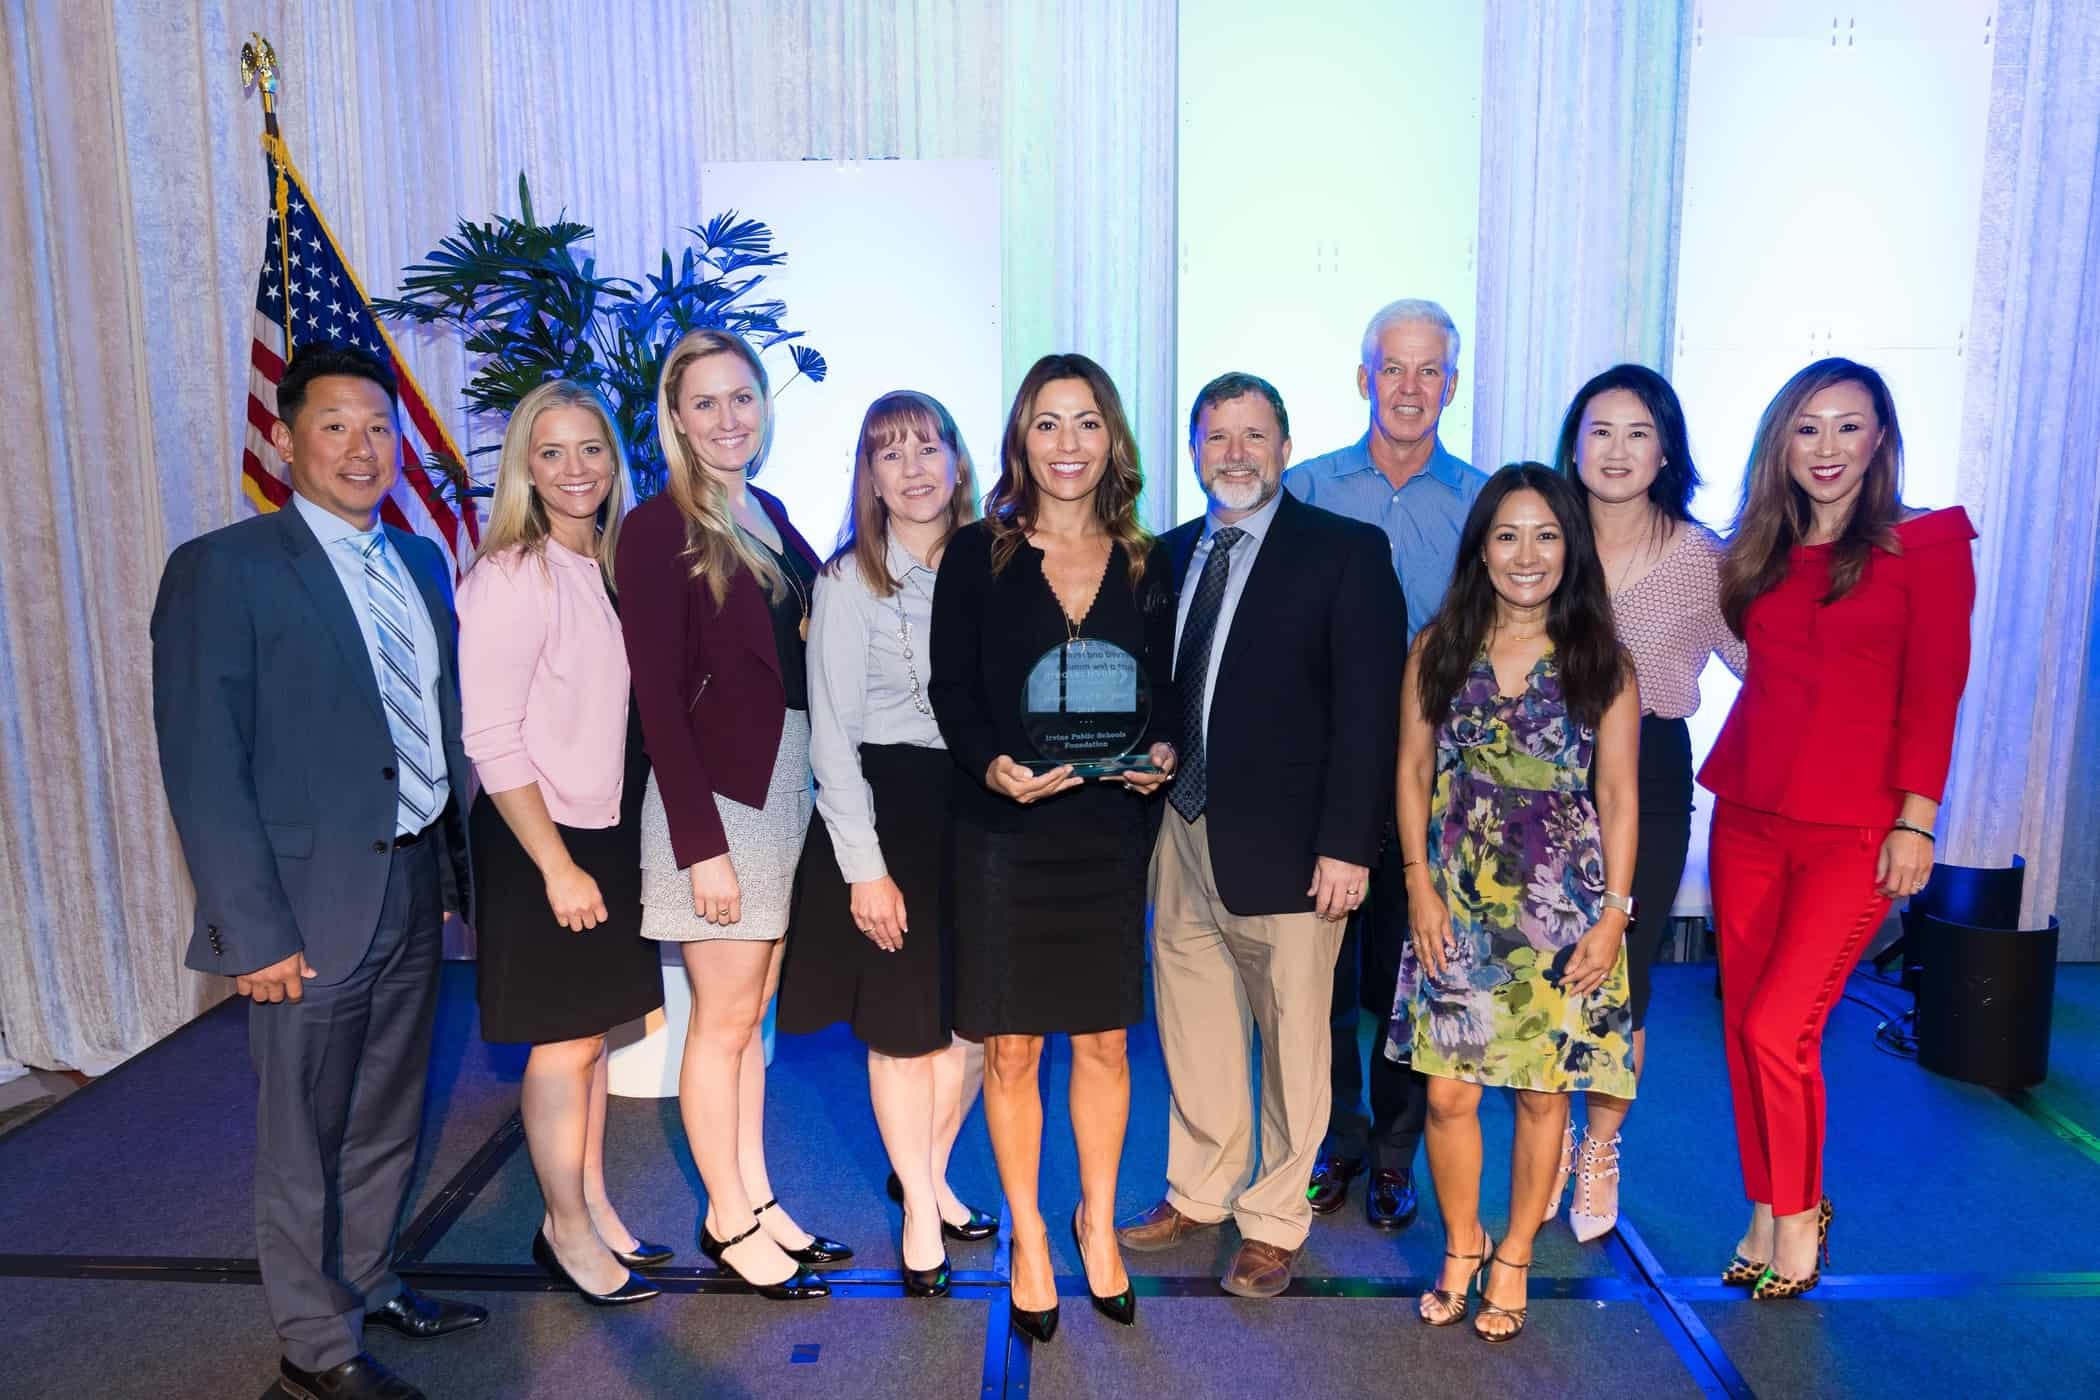 IPSF Named 2018 Nonprofit of the Year By Greater Irvine Chamber